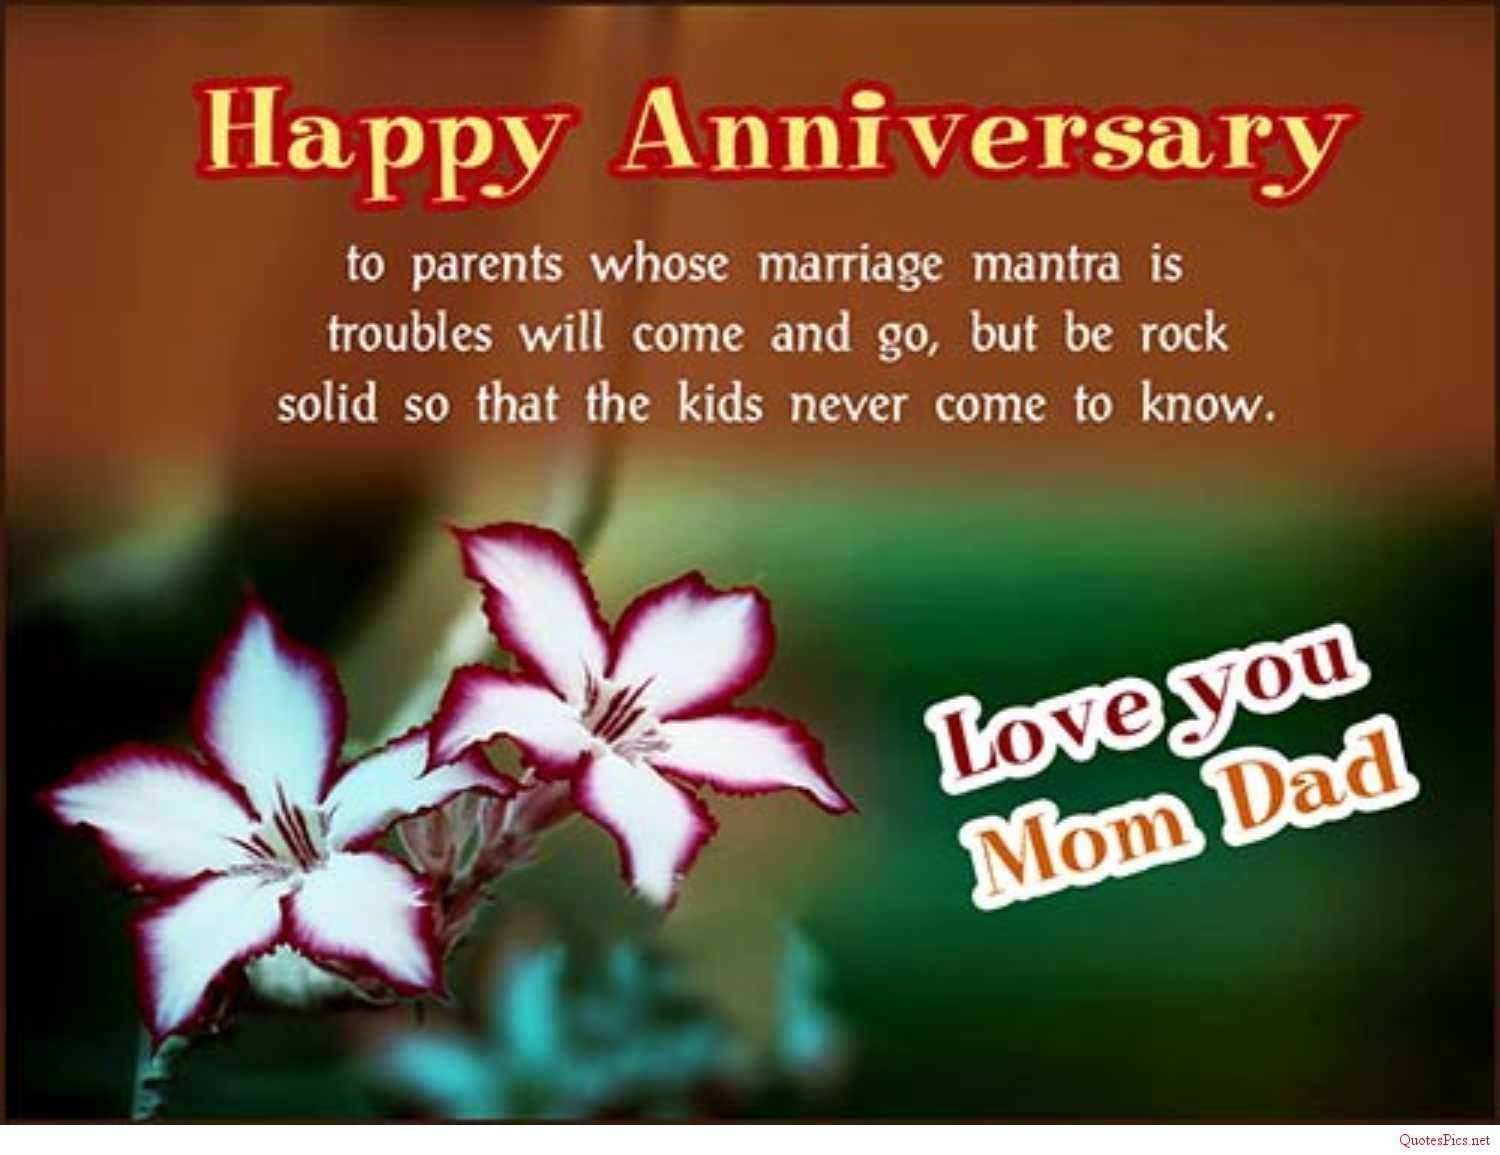 Happy Anniversary Mom And Dad Images Posted By Ethan Simpson